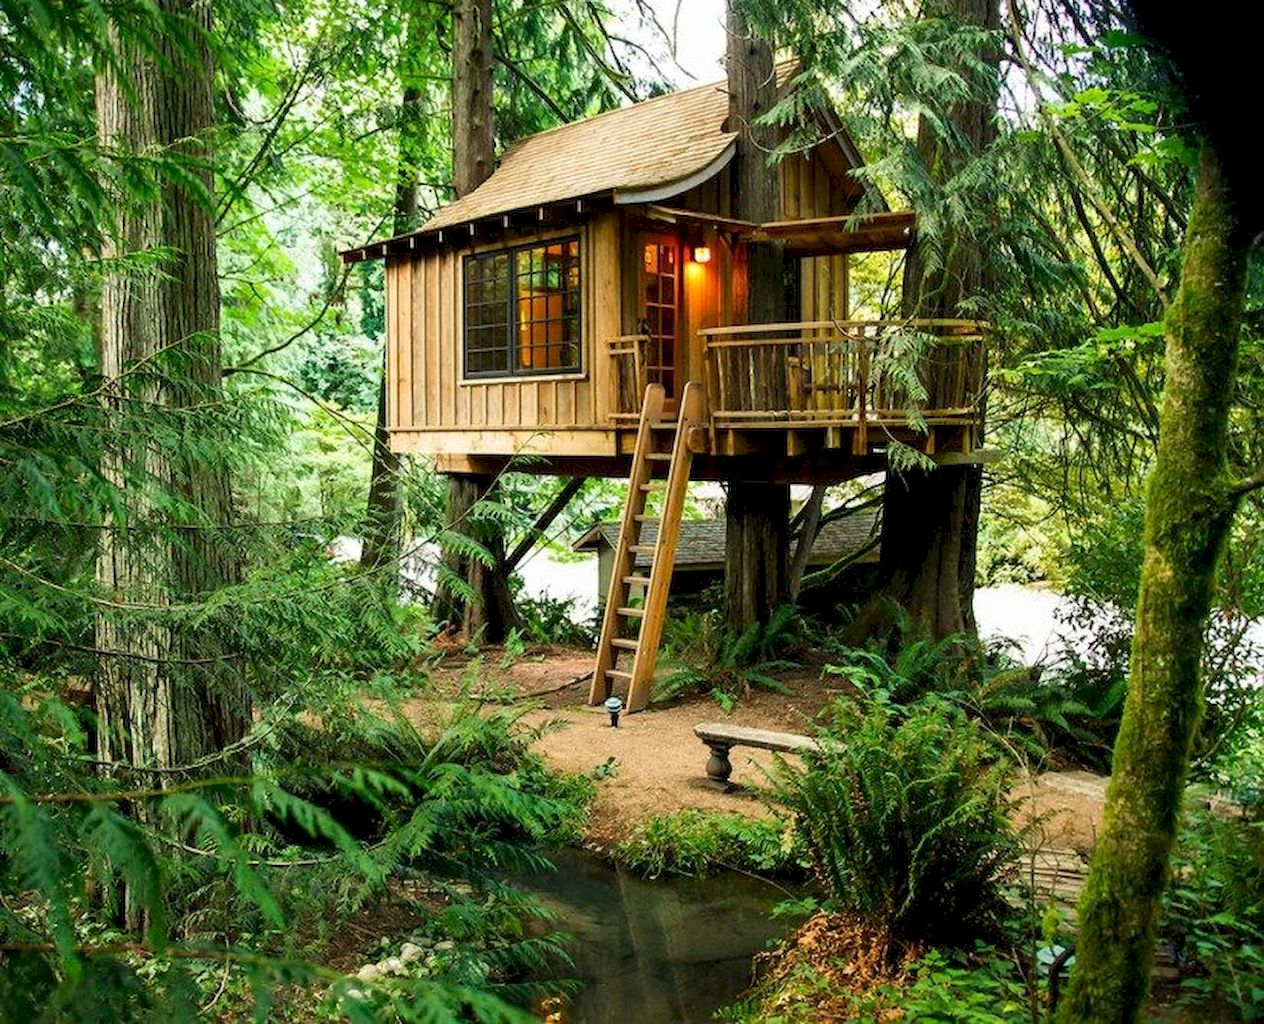 DIY Treehouse For 2018 Summer Times - Elonahome.com